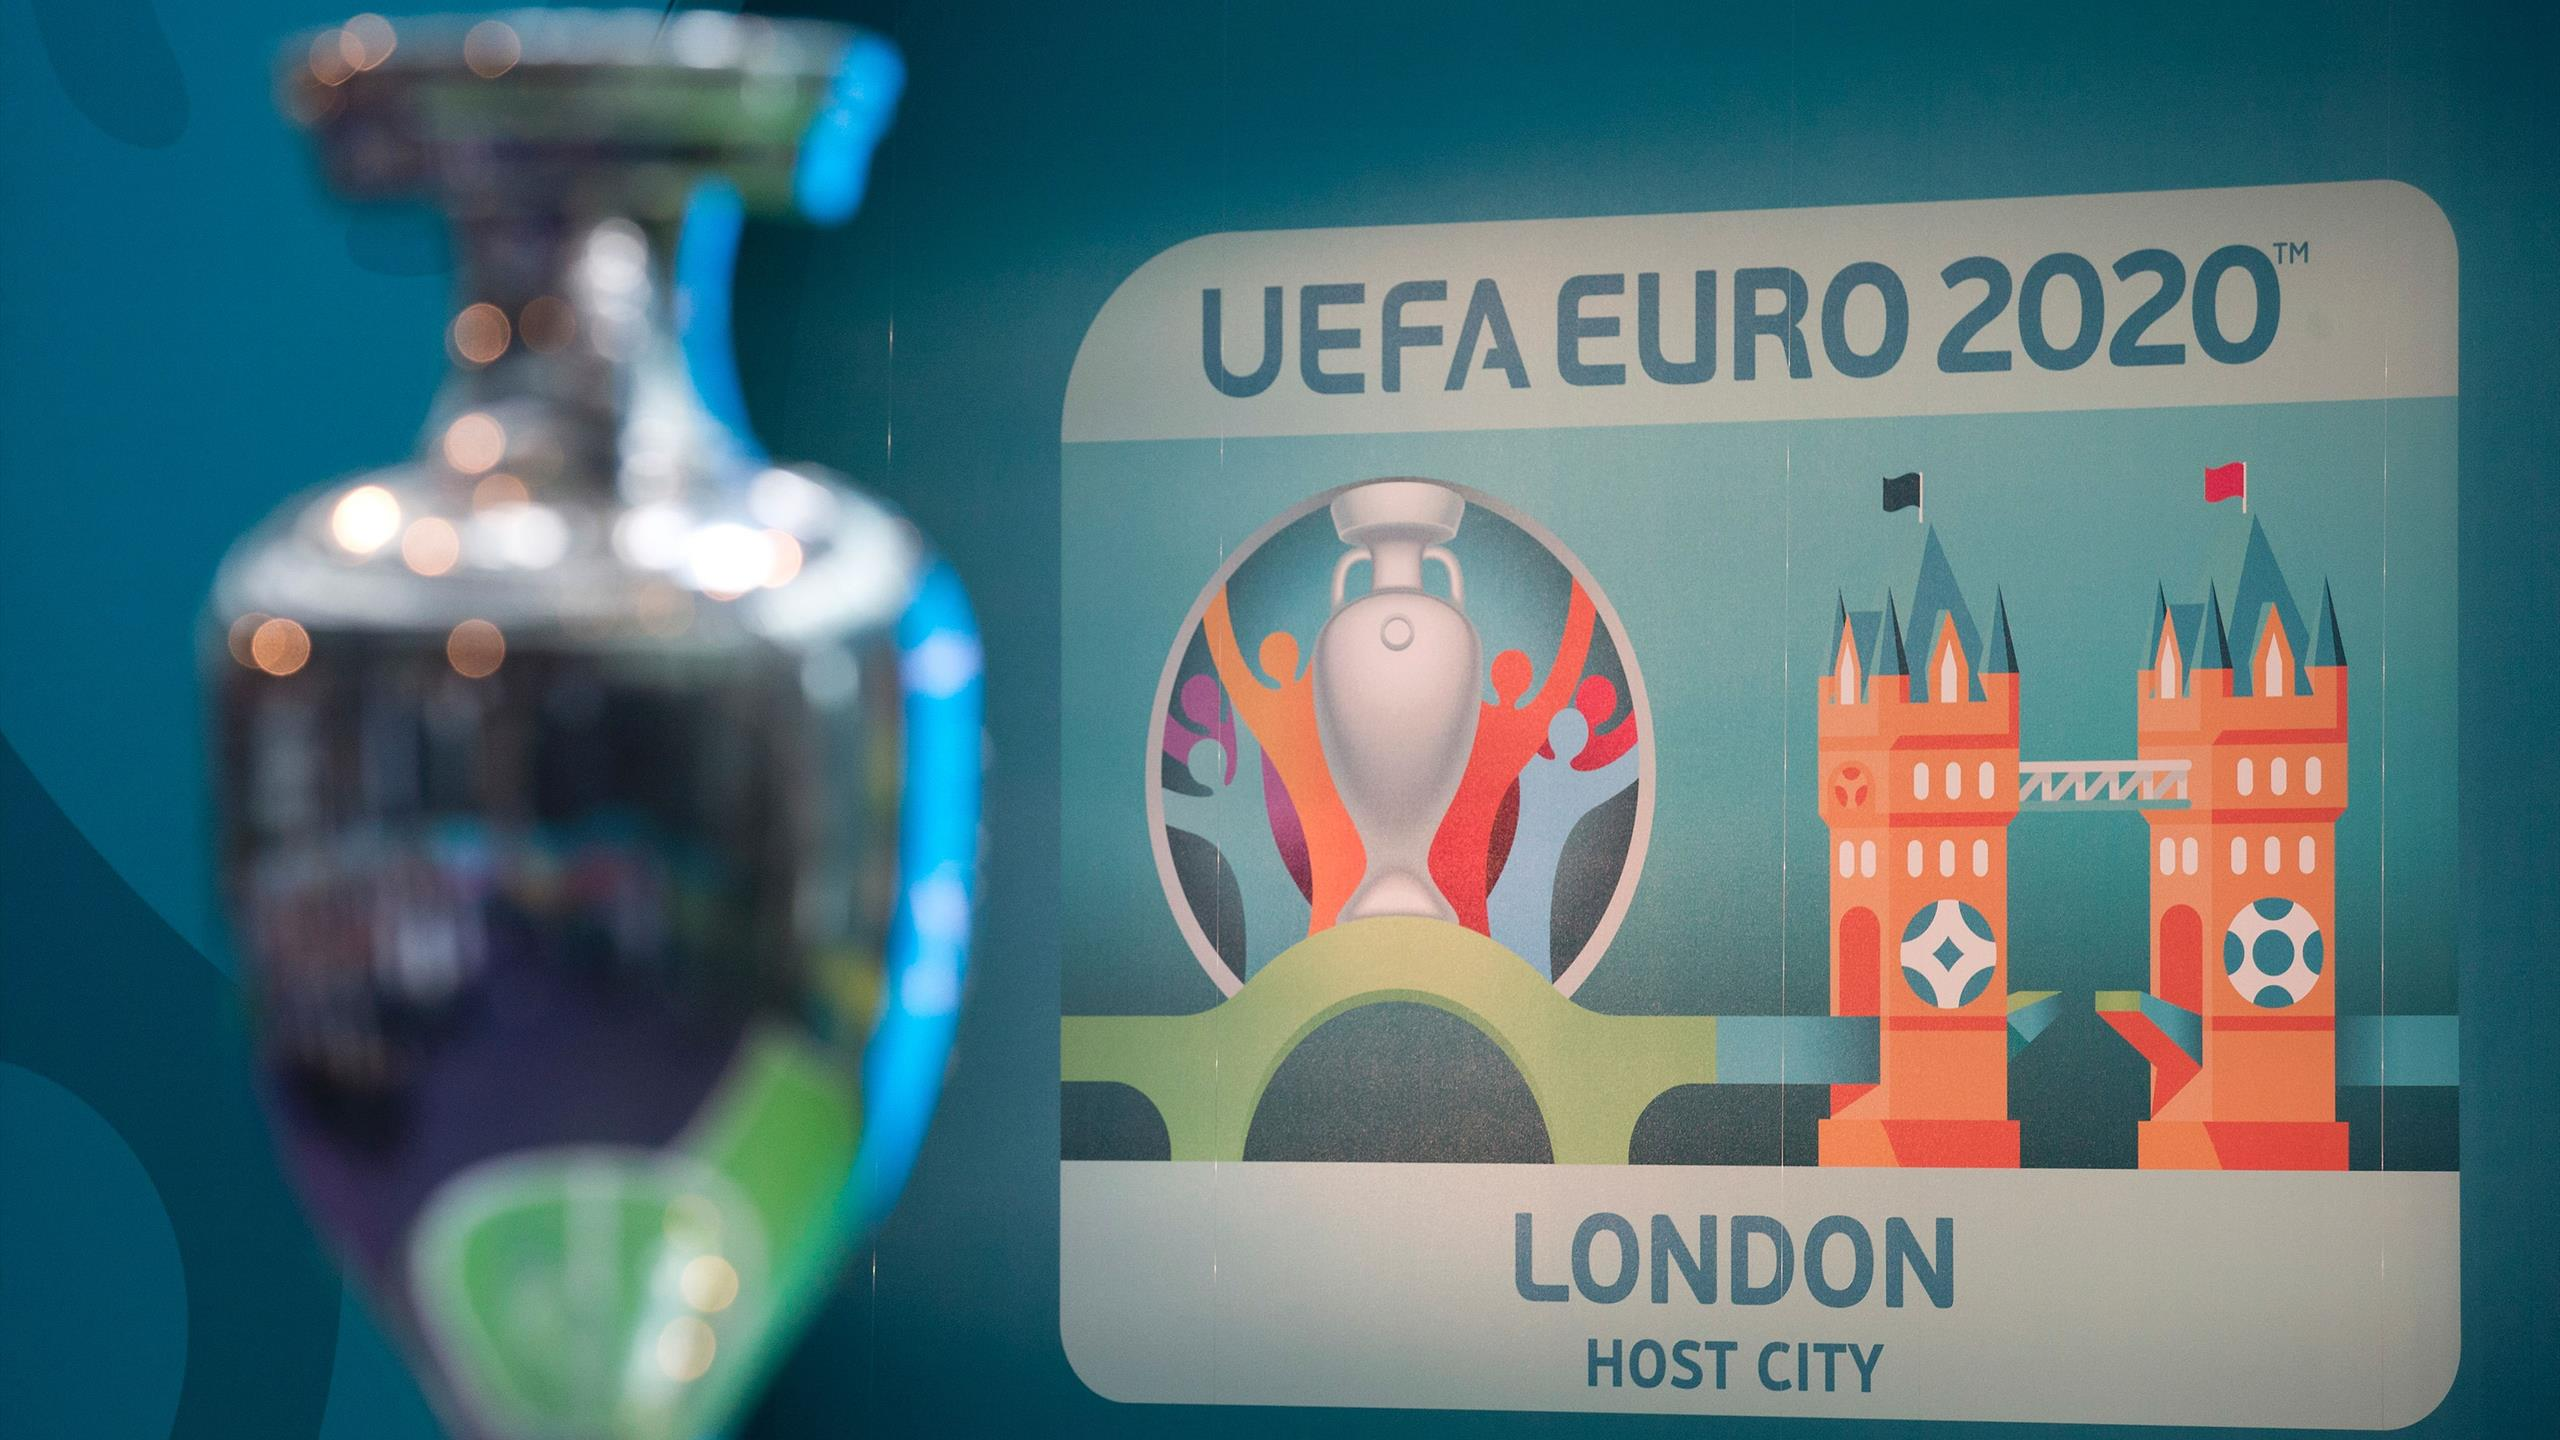 Euro 2020 in 2021: Full schedule, fixtures and groups, venues, odds, TV details and more